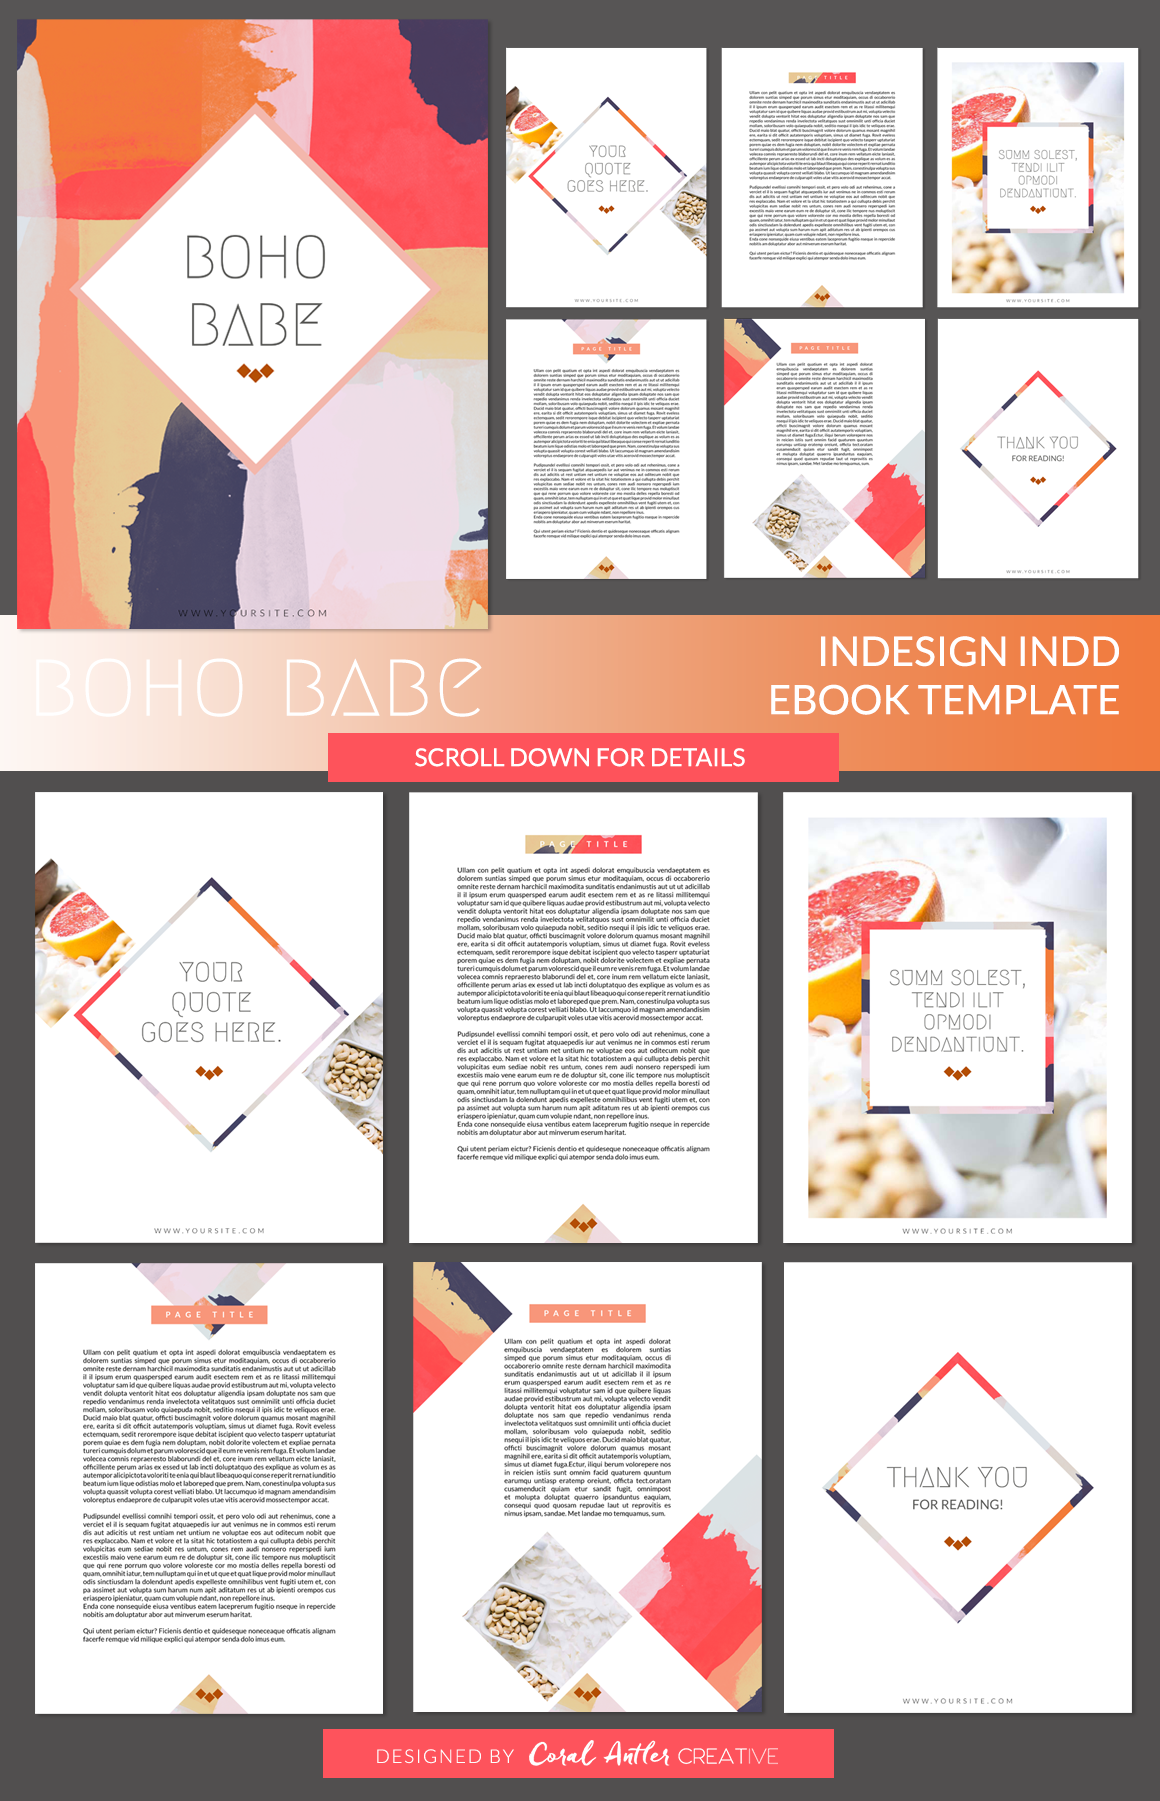 Boho Babe InDesign Ebook Template by Coral Antler Creative on